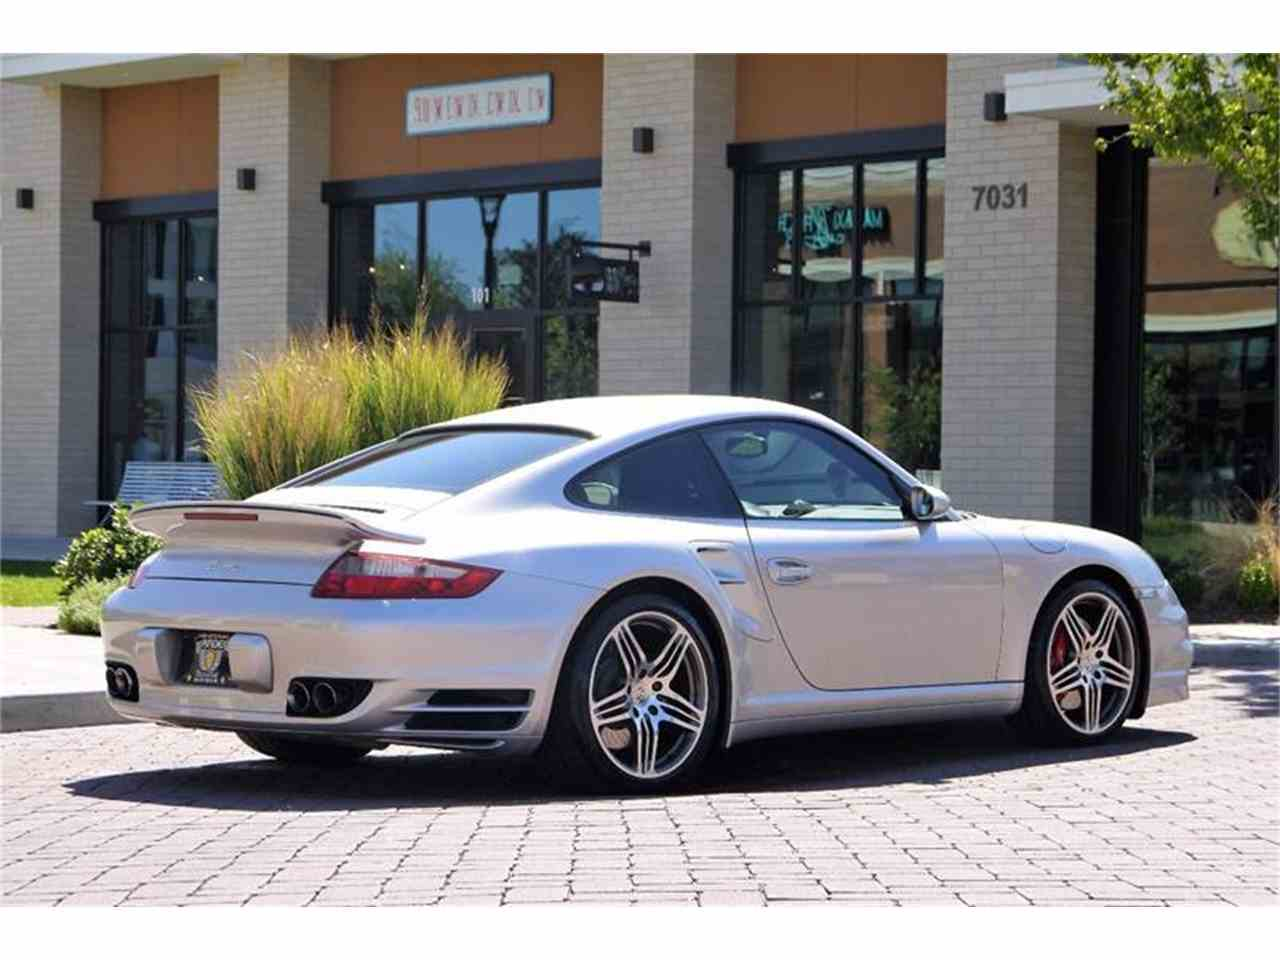 Large Picture of '07 Porsche 911 located in Tennessee - $84,800.00 Offered by Arde Motorcars - M2NR